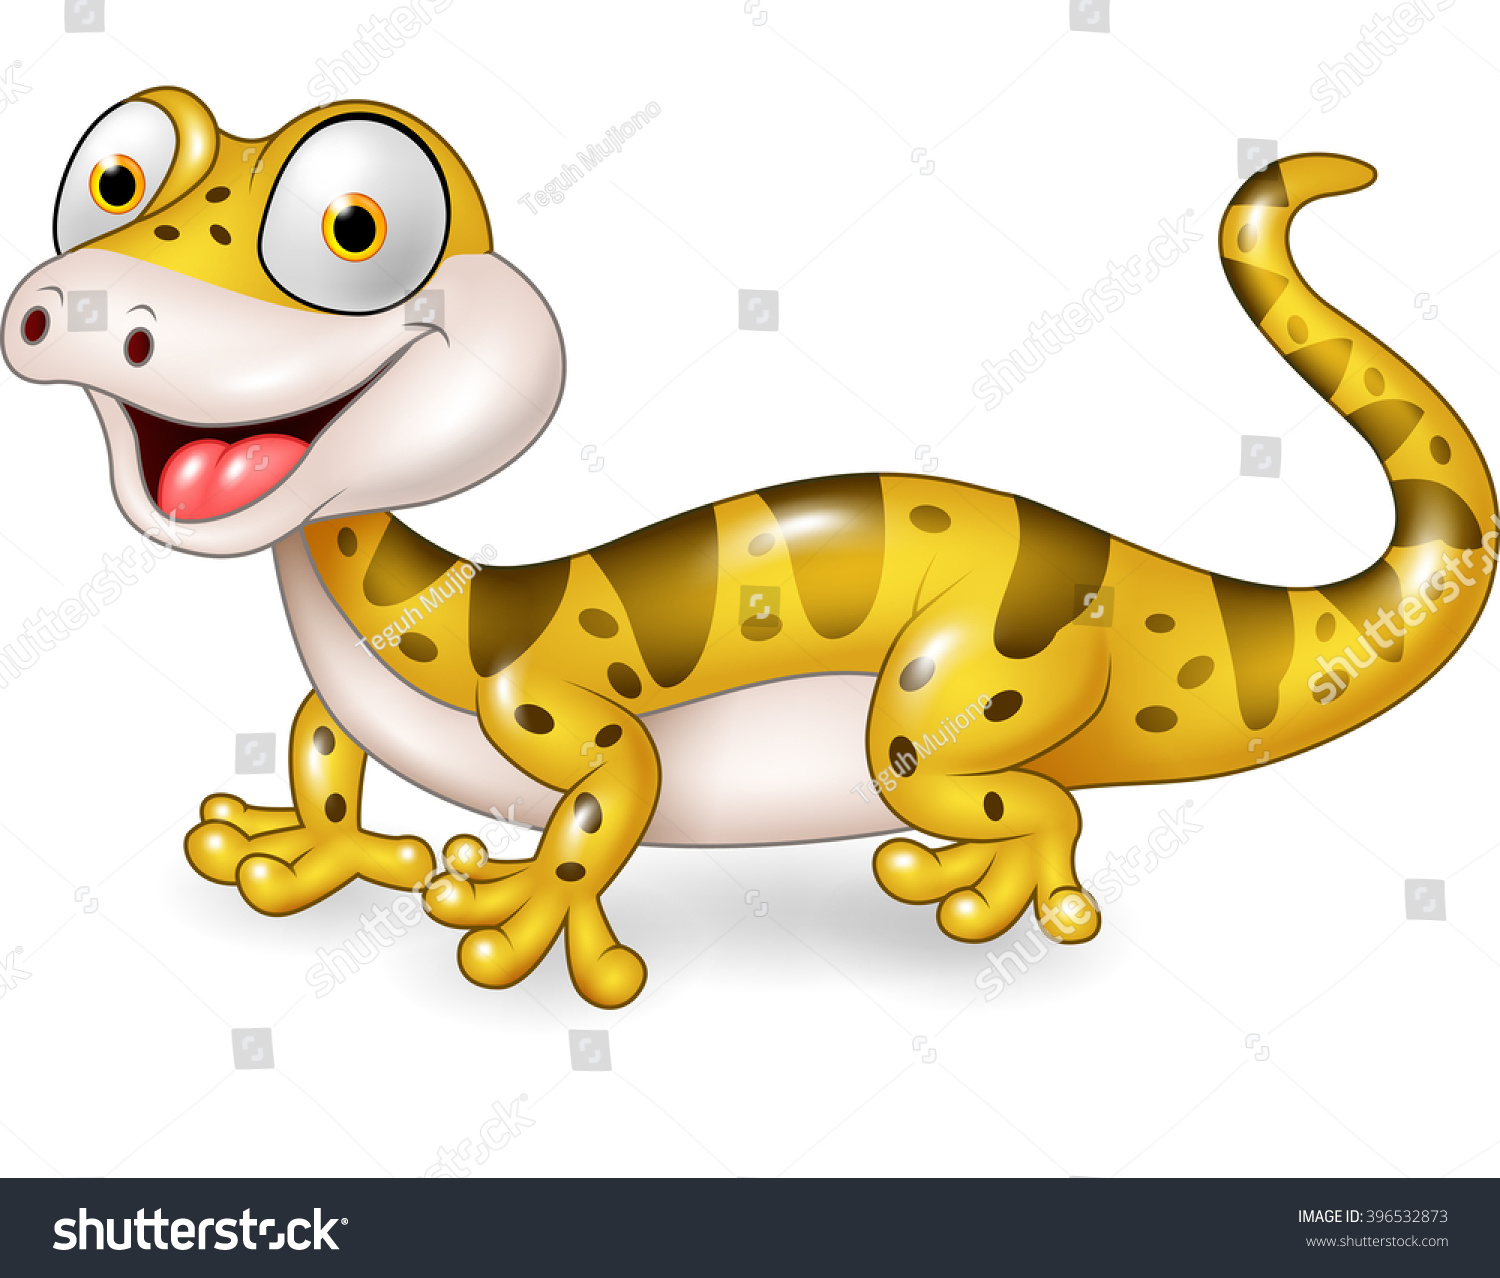 Cute Lizard Posing Isolated On White Stock Vector 396532873 ... for Cute Lizard Clipart  131fsj